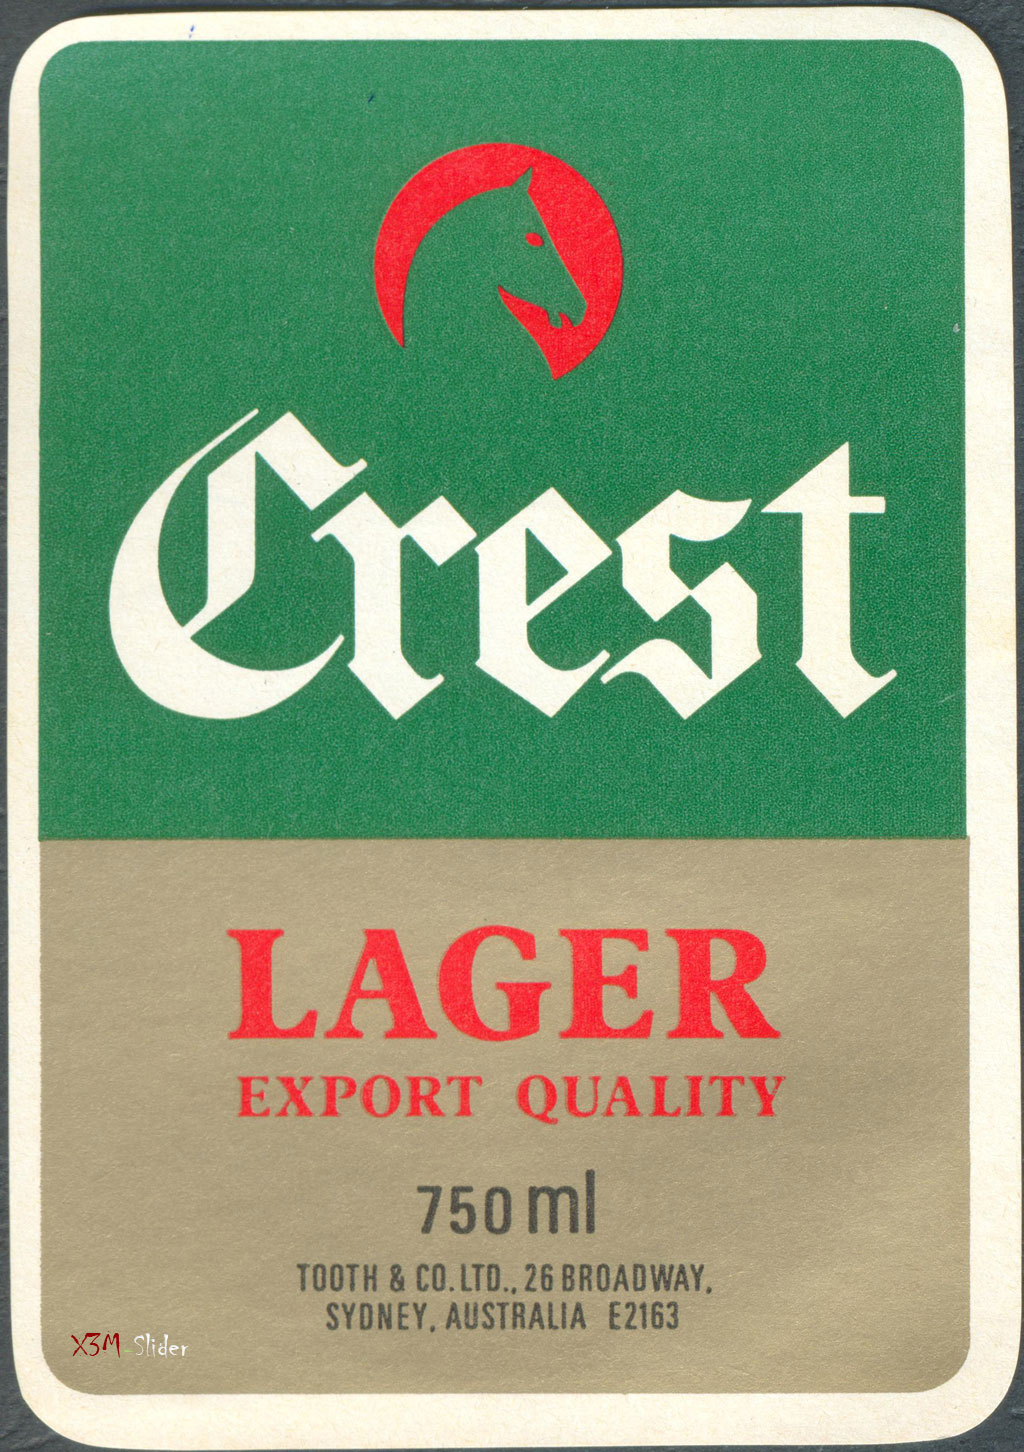 Crest Lager Export Quality